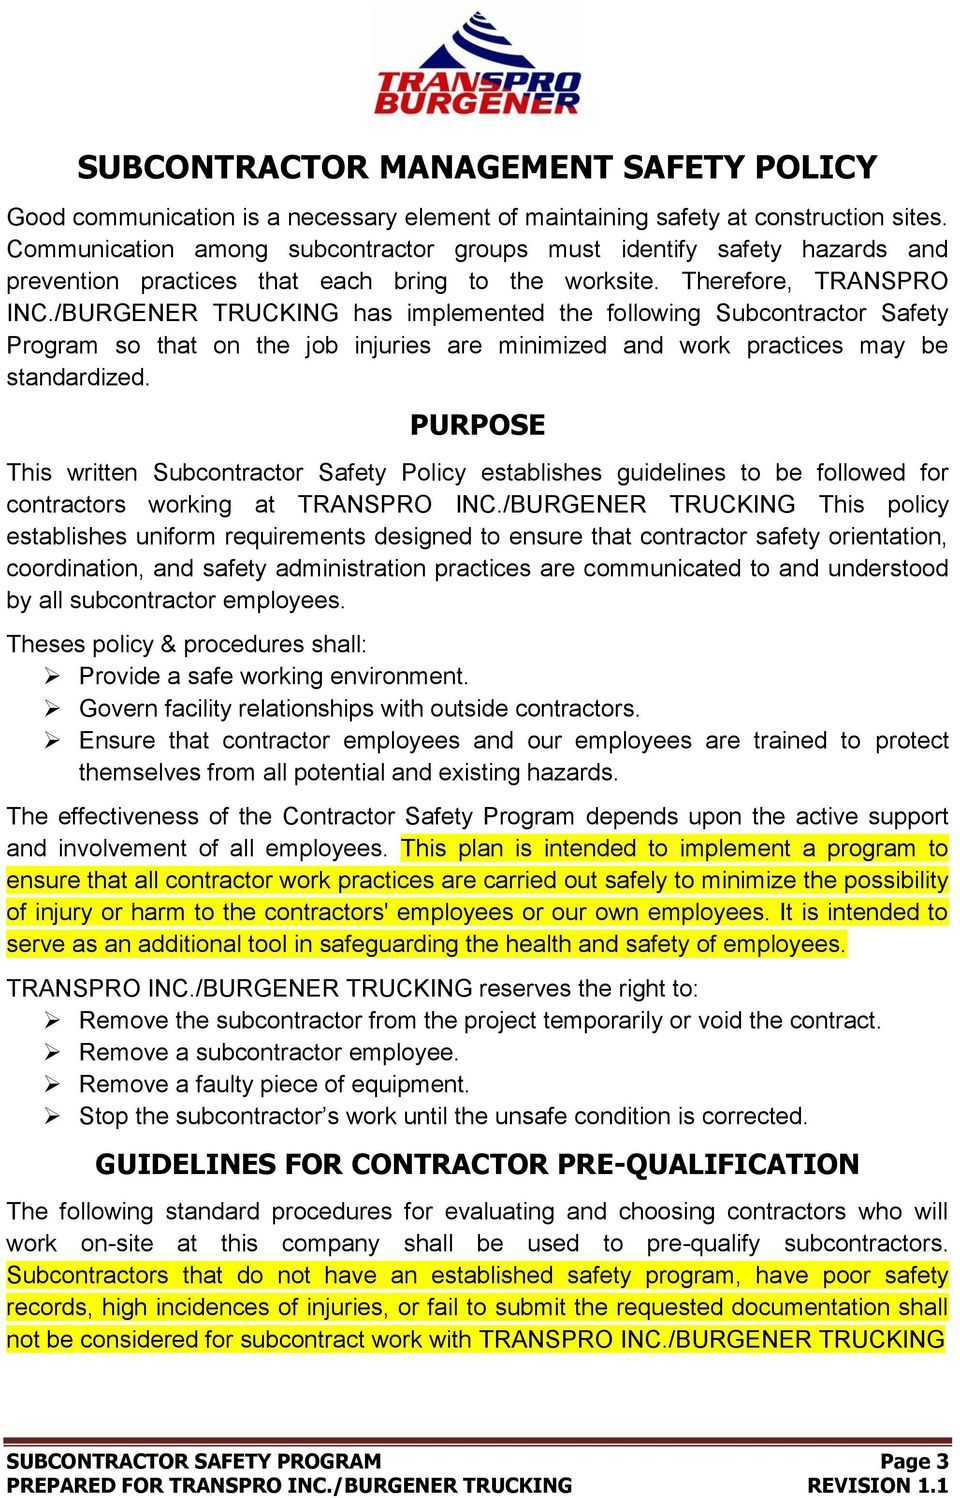 /BURGENER TRUCKING has implemented the following Subcontractor Safety Program so that on the job injuries are minimized and work practices may be standardized.